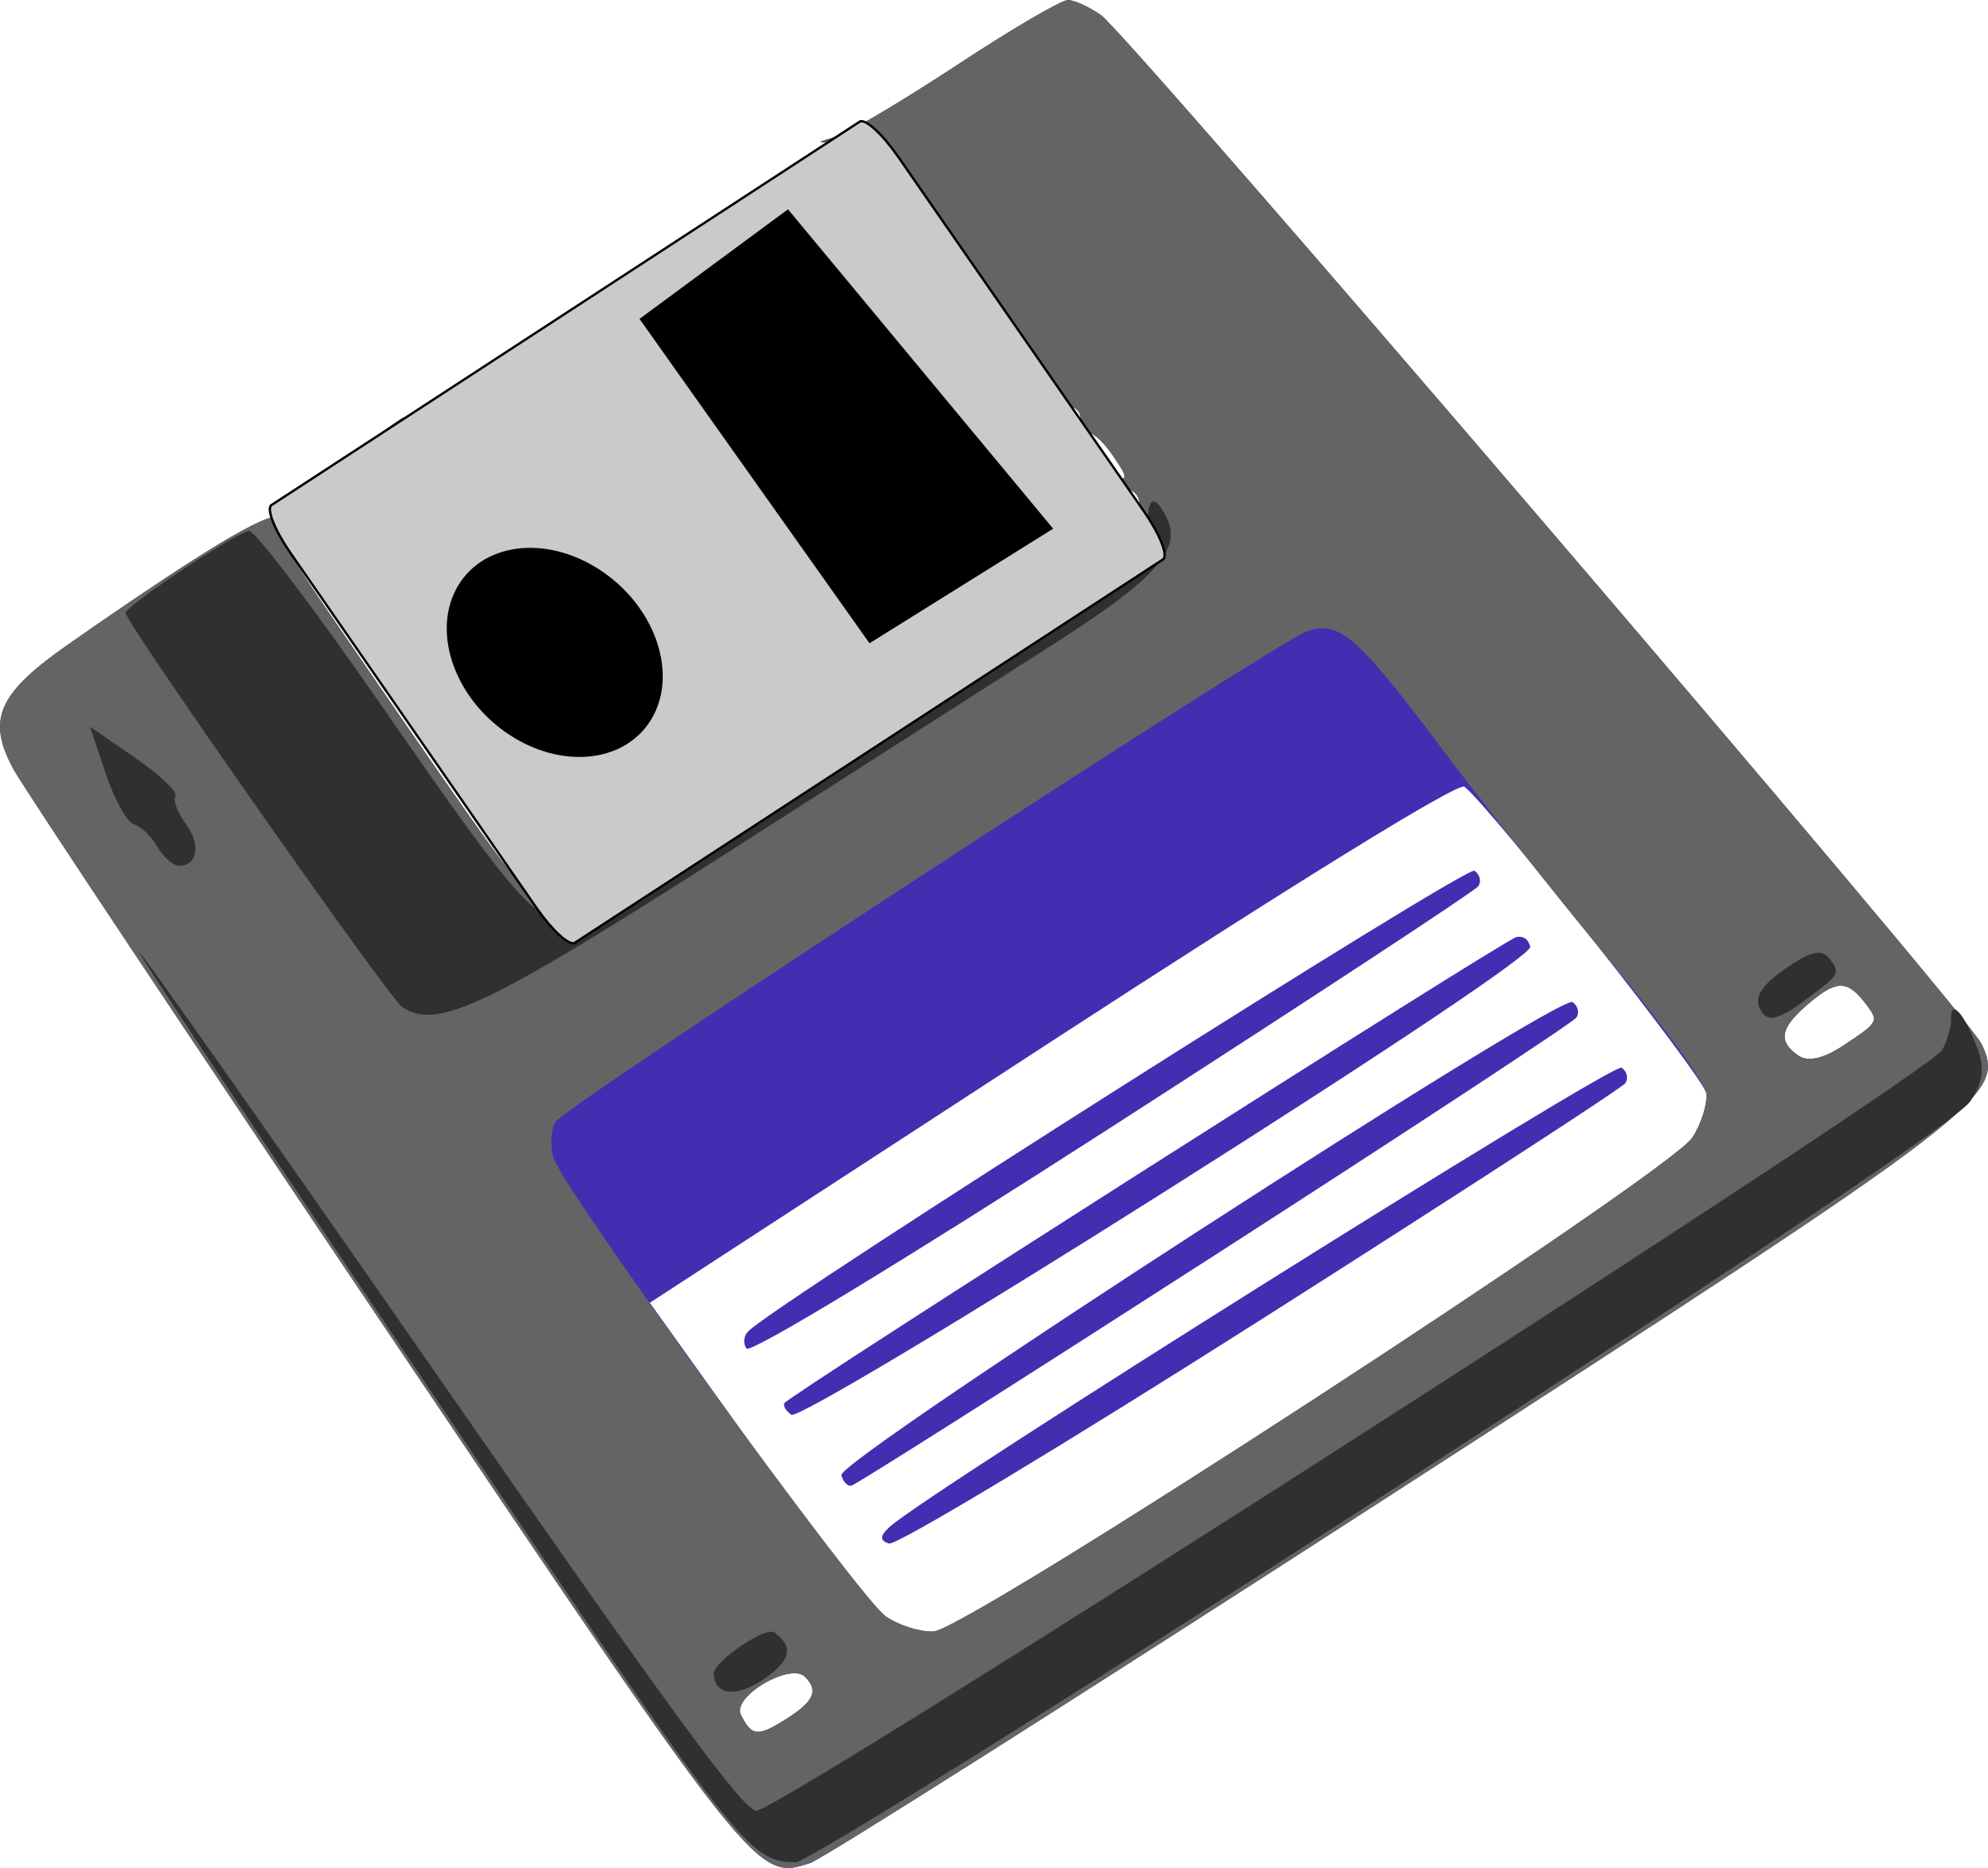 floppy diskette by Machovka